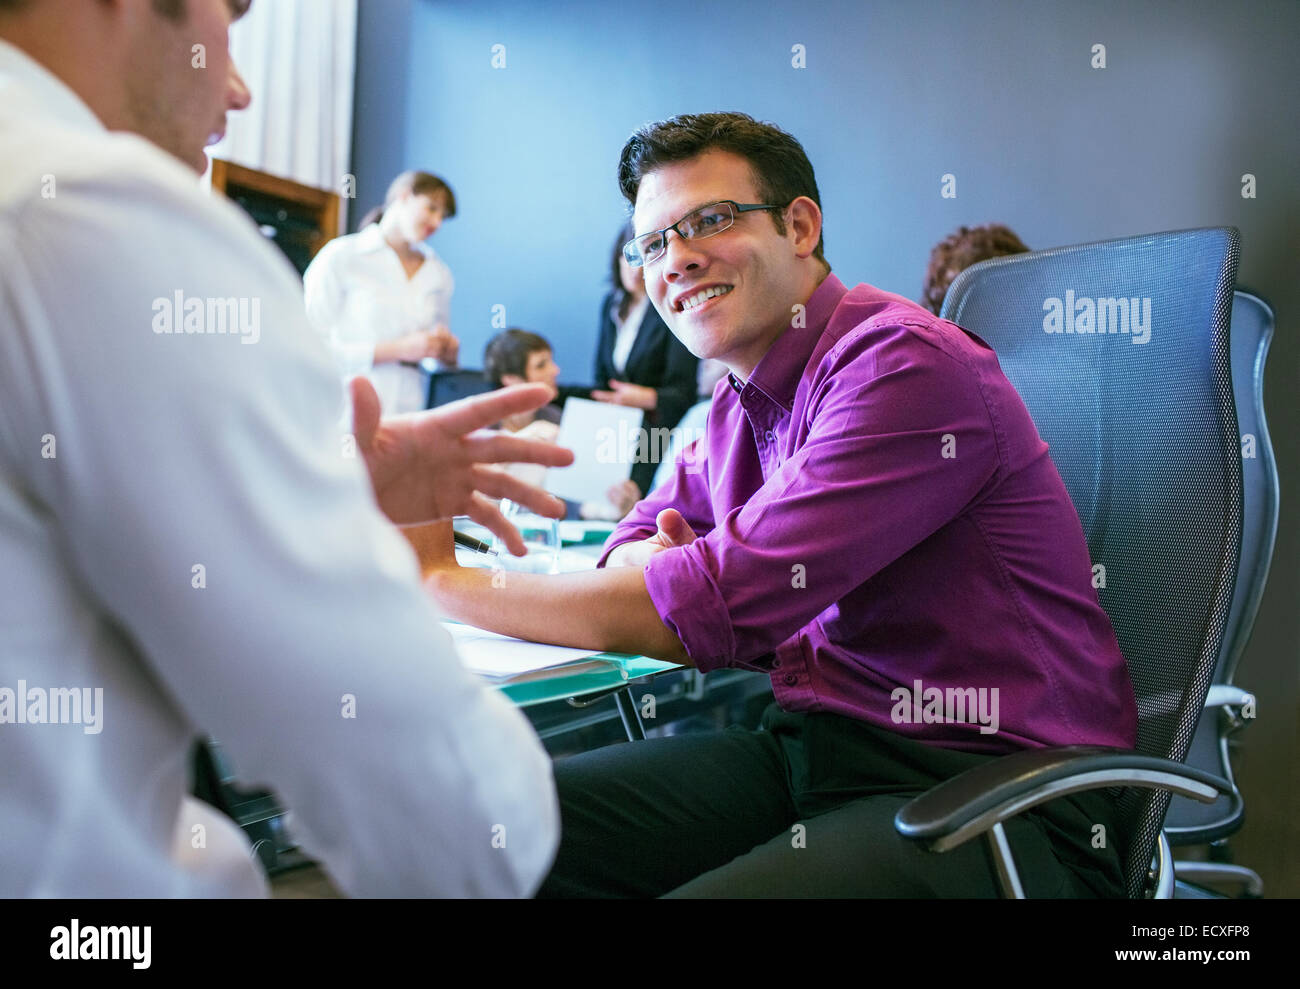 Businessmen talking during meeting in conference room with colleagues in background - Stock Image